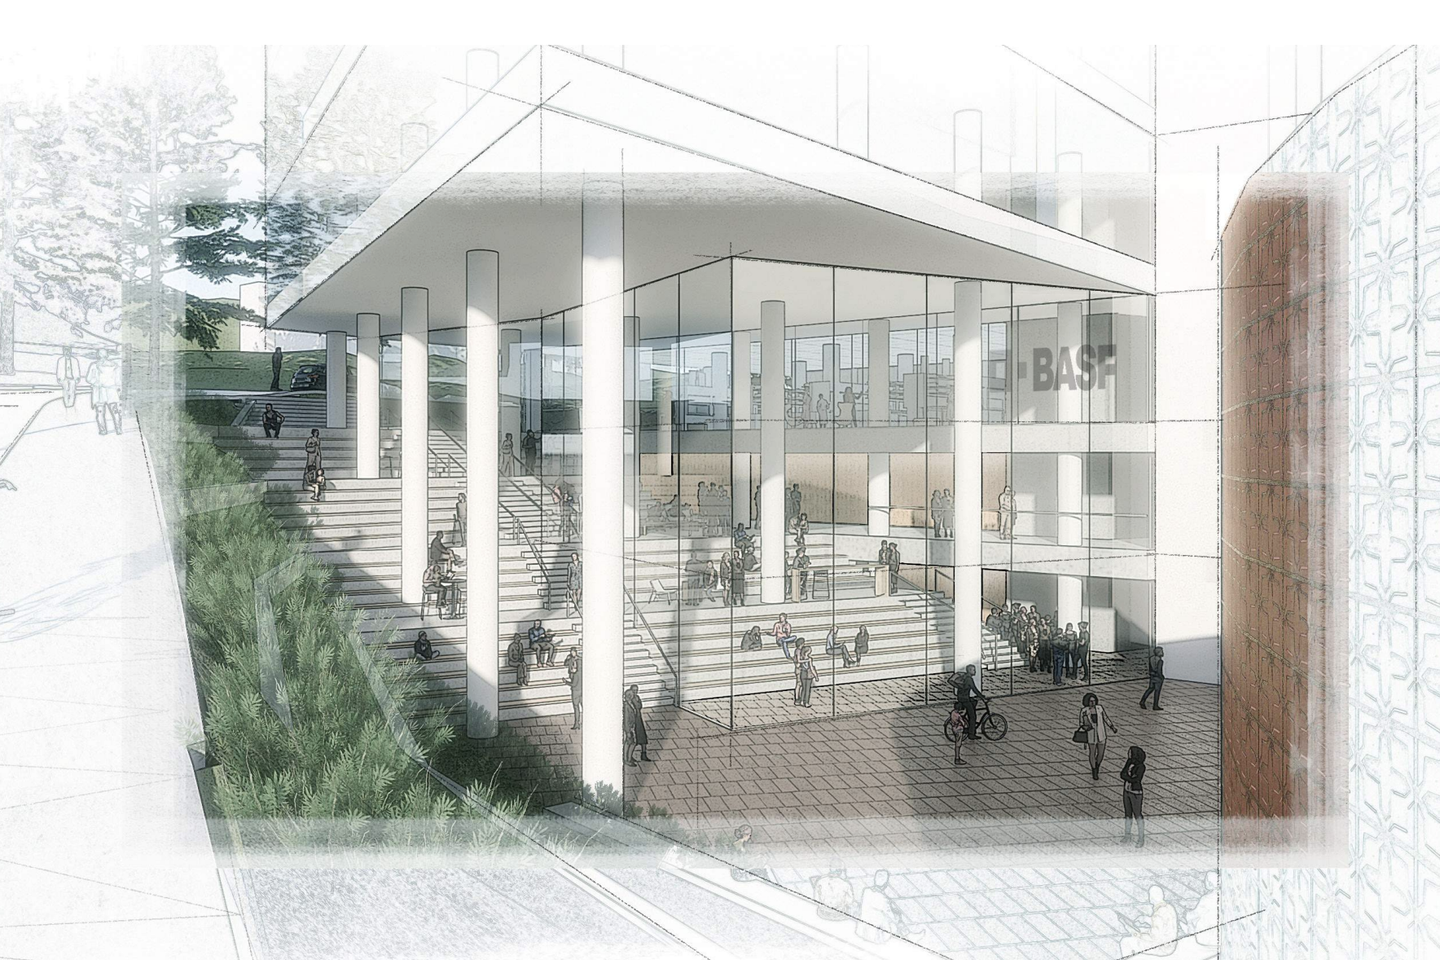 Architect's rendering of the entrance to Heathcock Hall